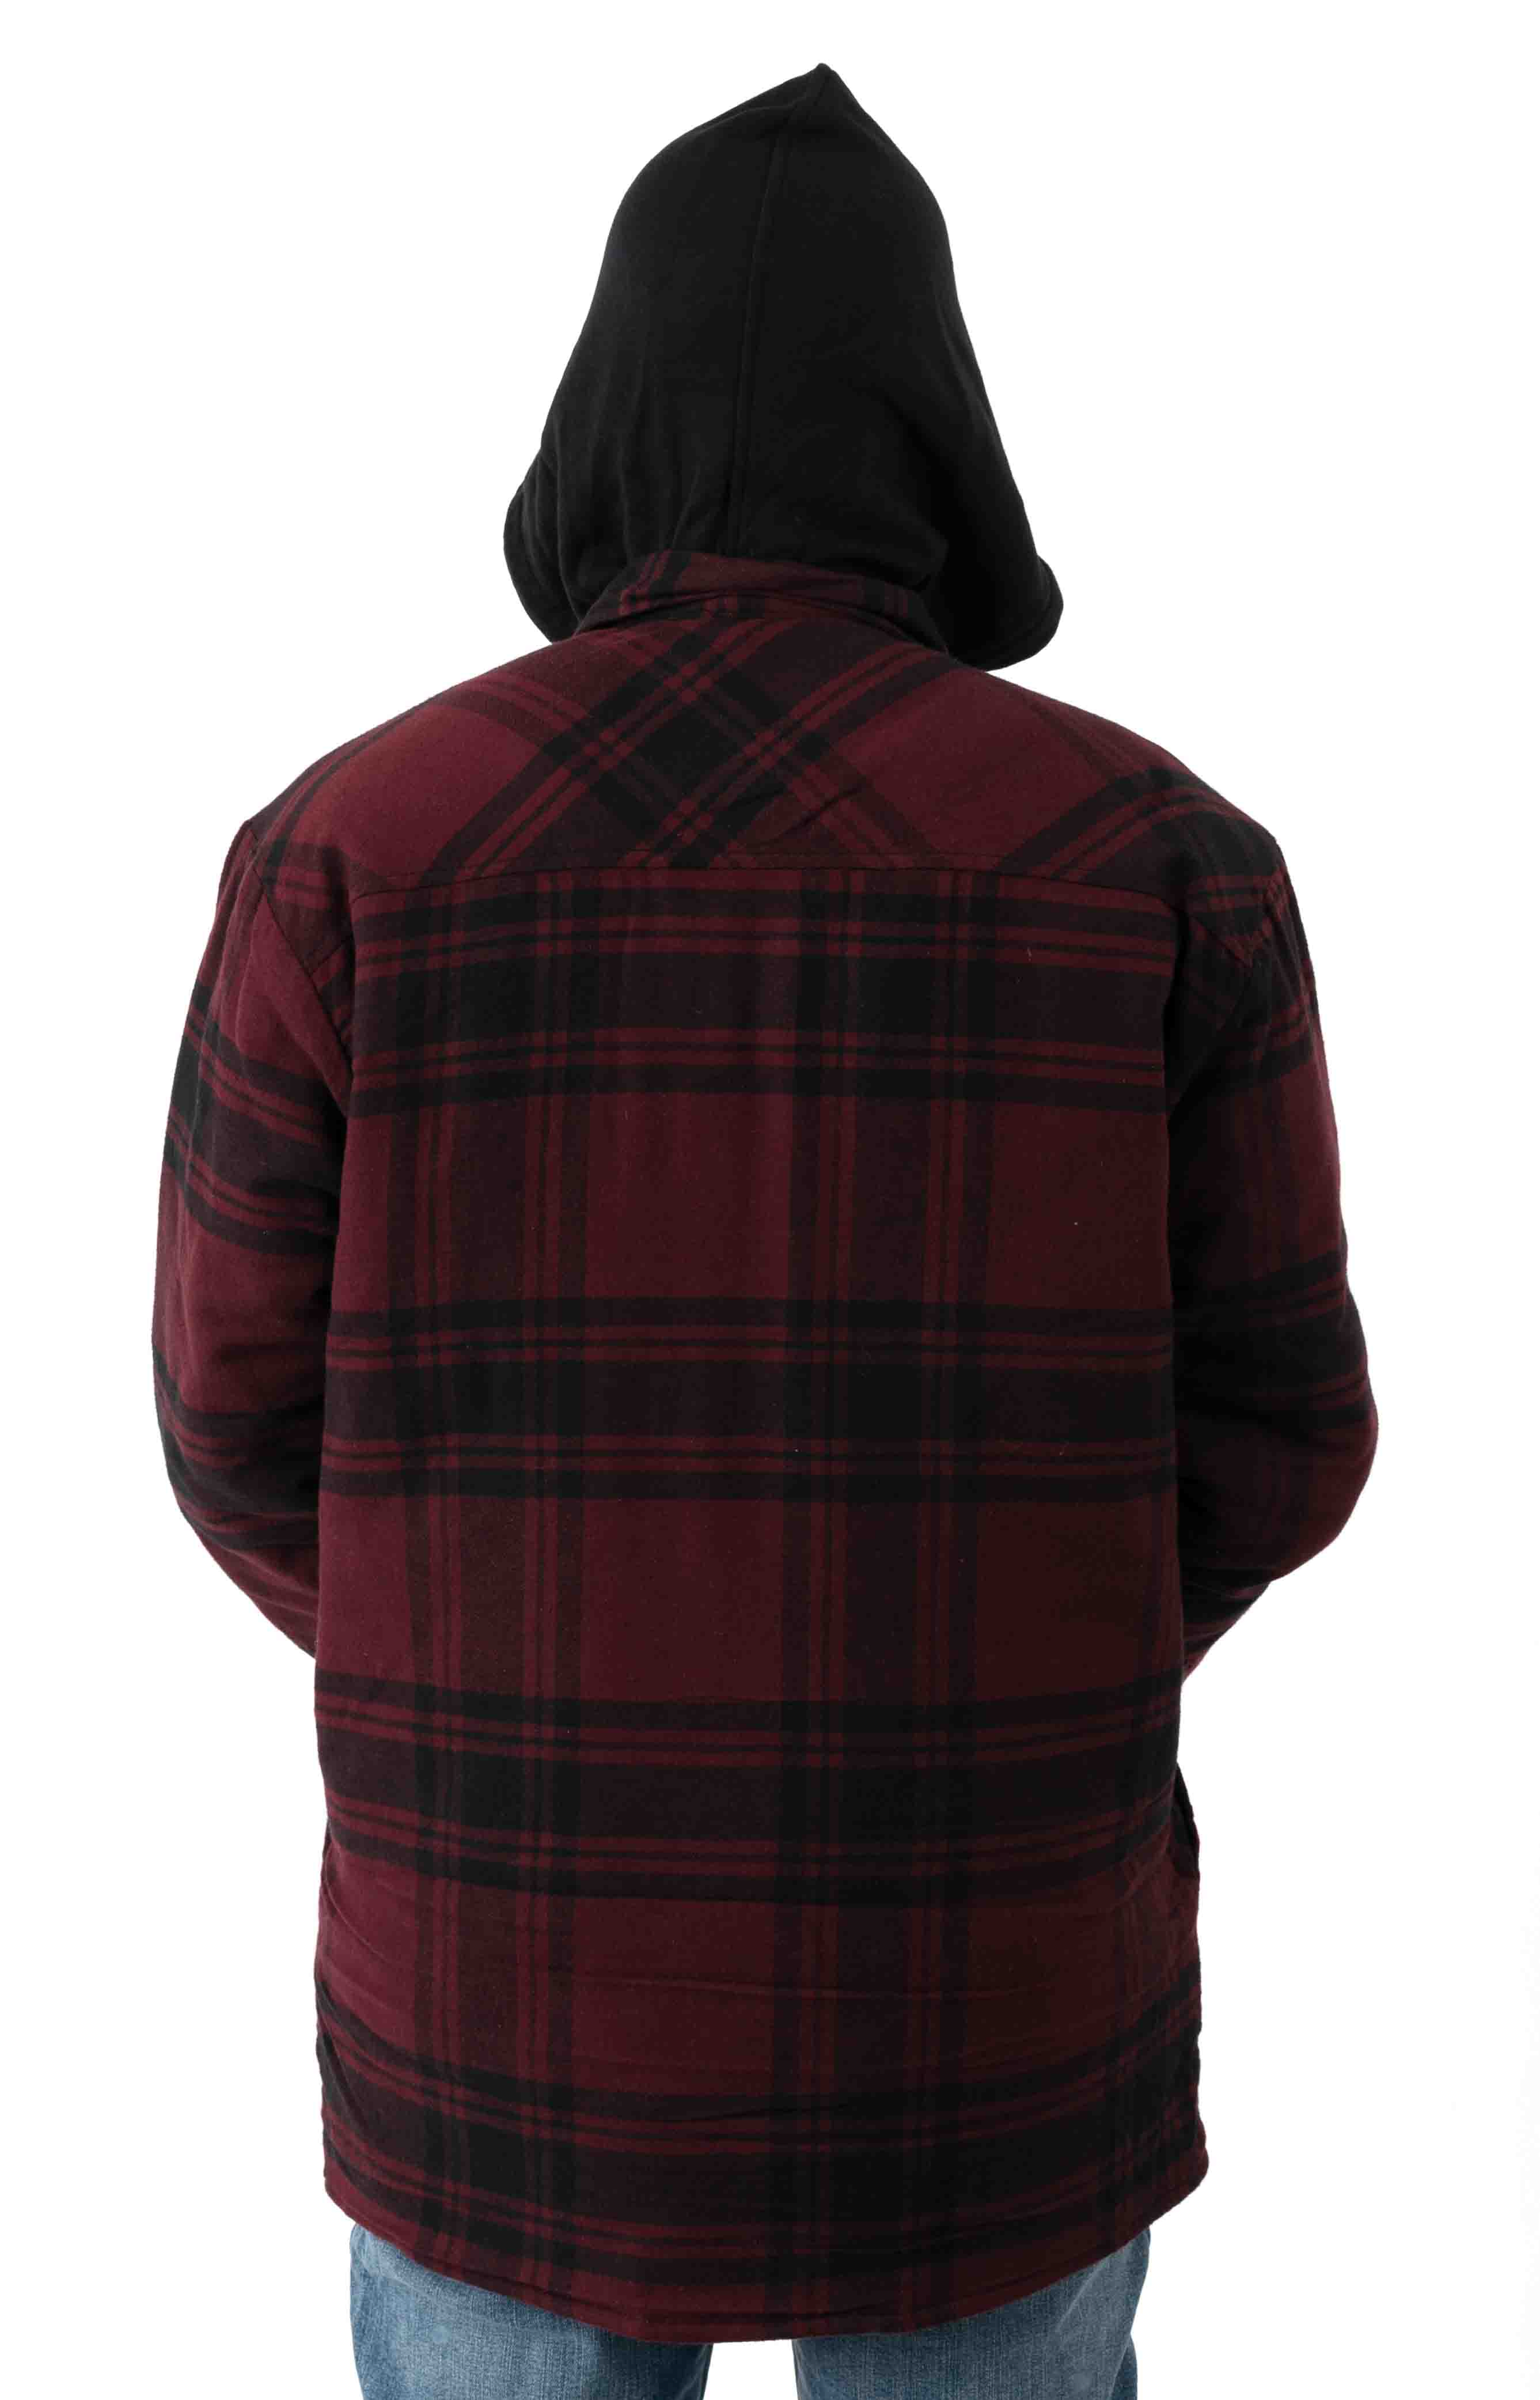 (TJ201) Relaxed Fit Icon Hooded Quilted Shirt Jacket - Dark Port/Black Plaid  3